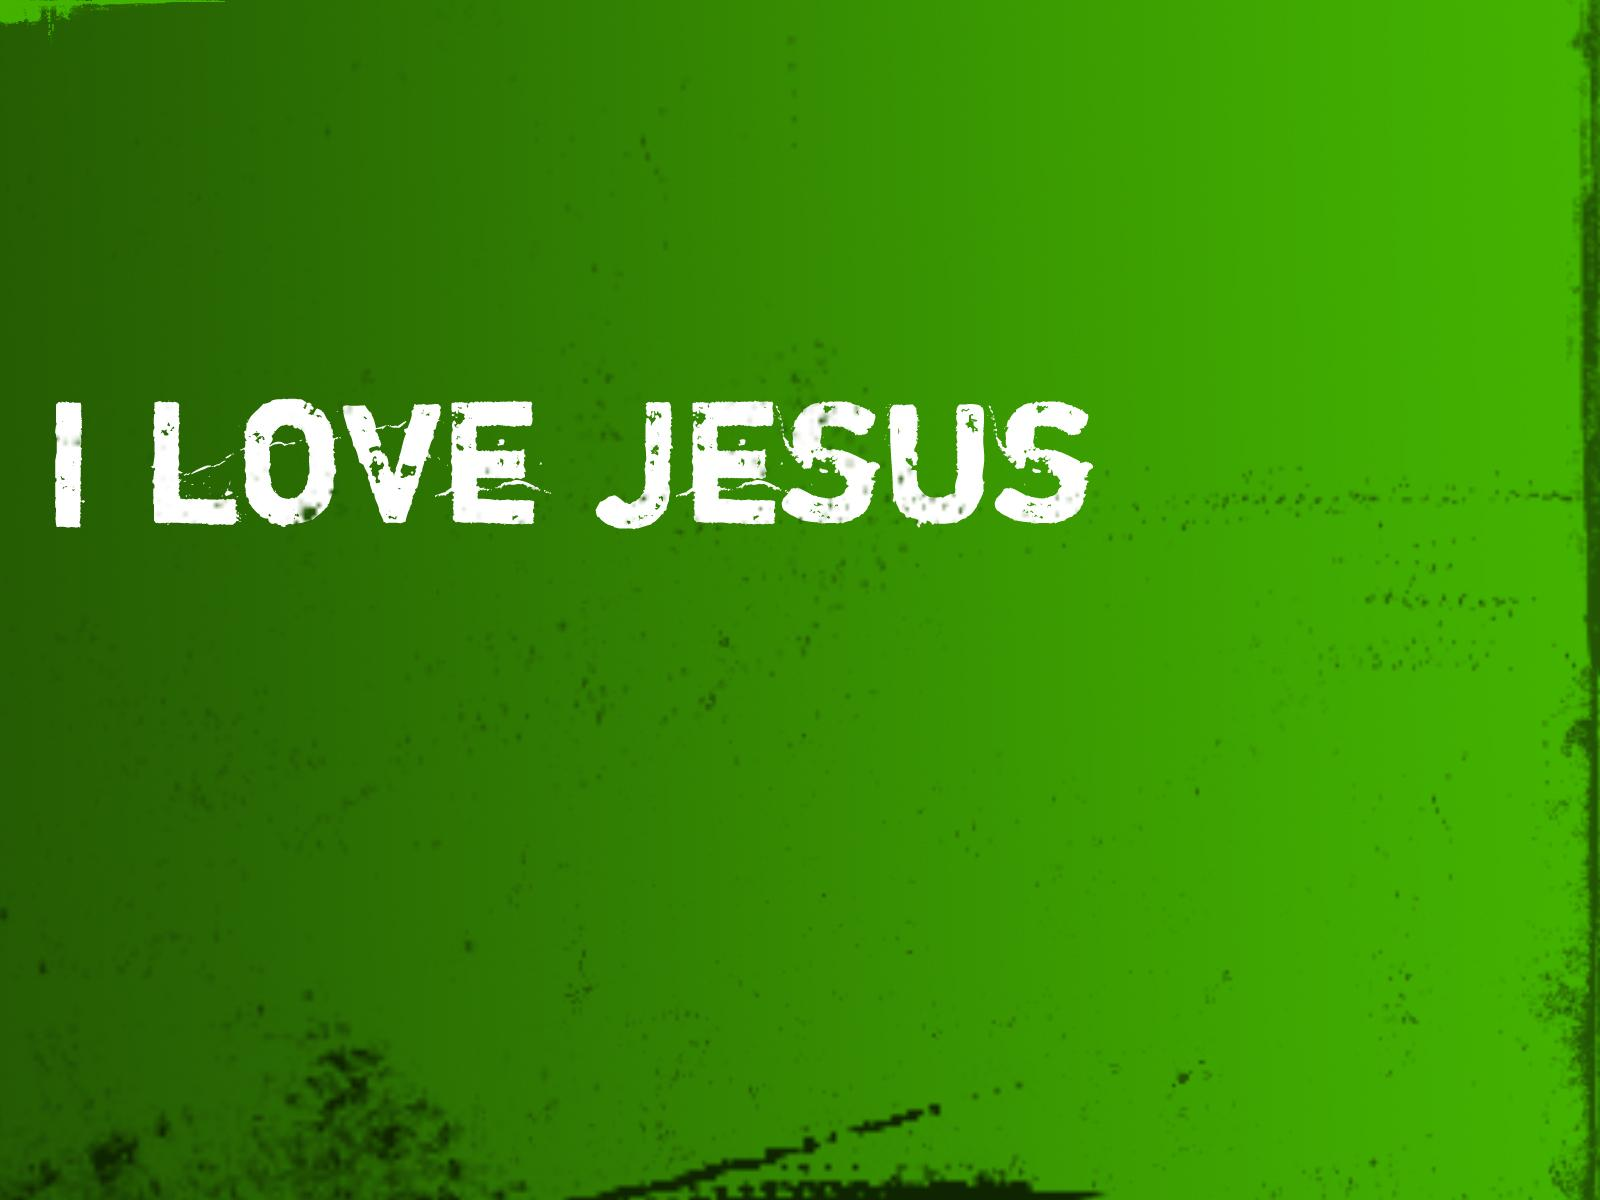 Love You Jesus Wallpaper : Bible Software And Wallpaper: Beautiful christian Wallpapers for Desktop